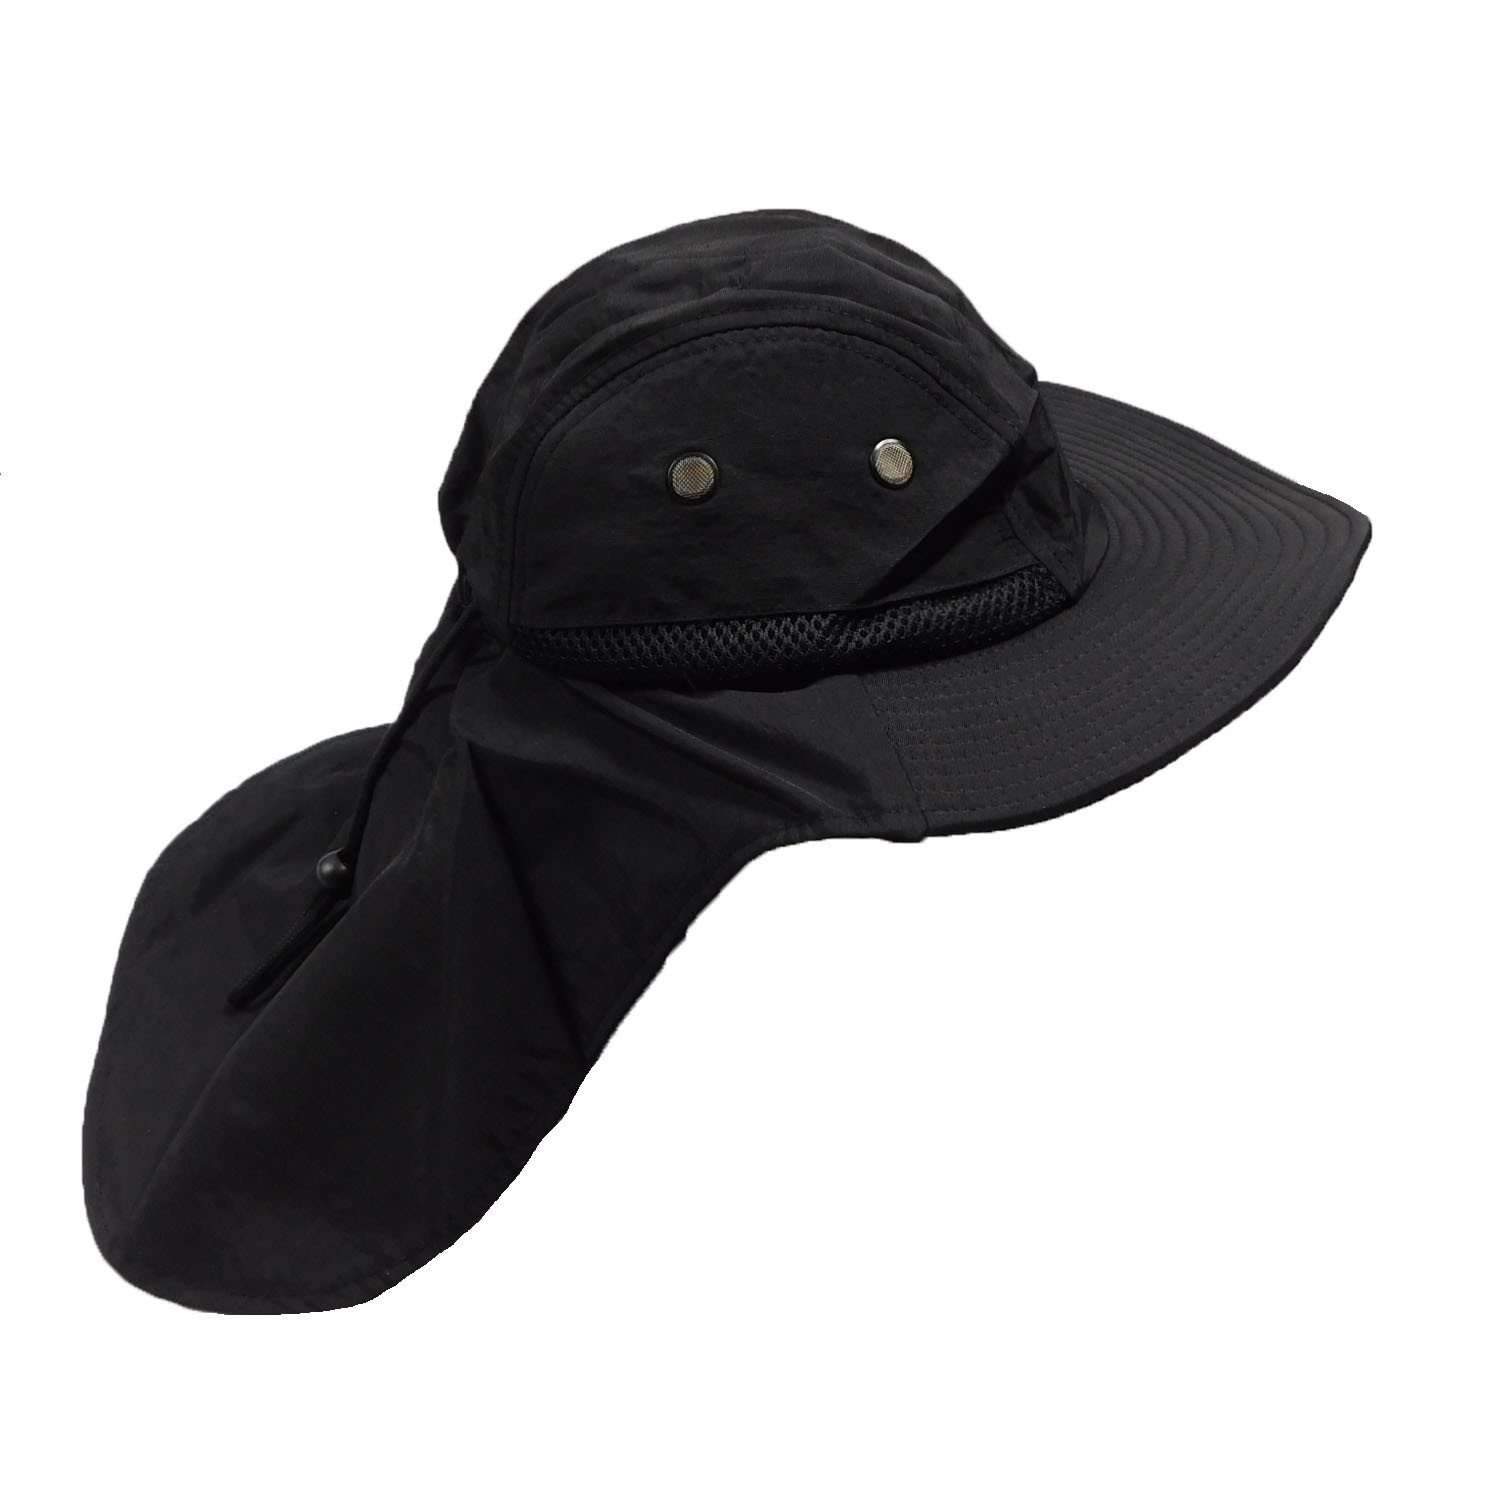 Large Bill Flap Cap - SetarTrading Hats